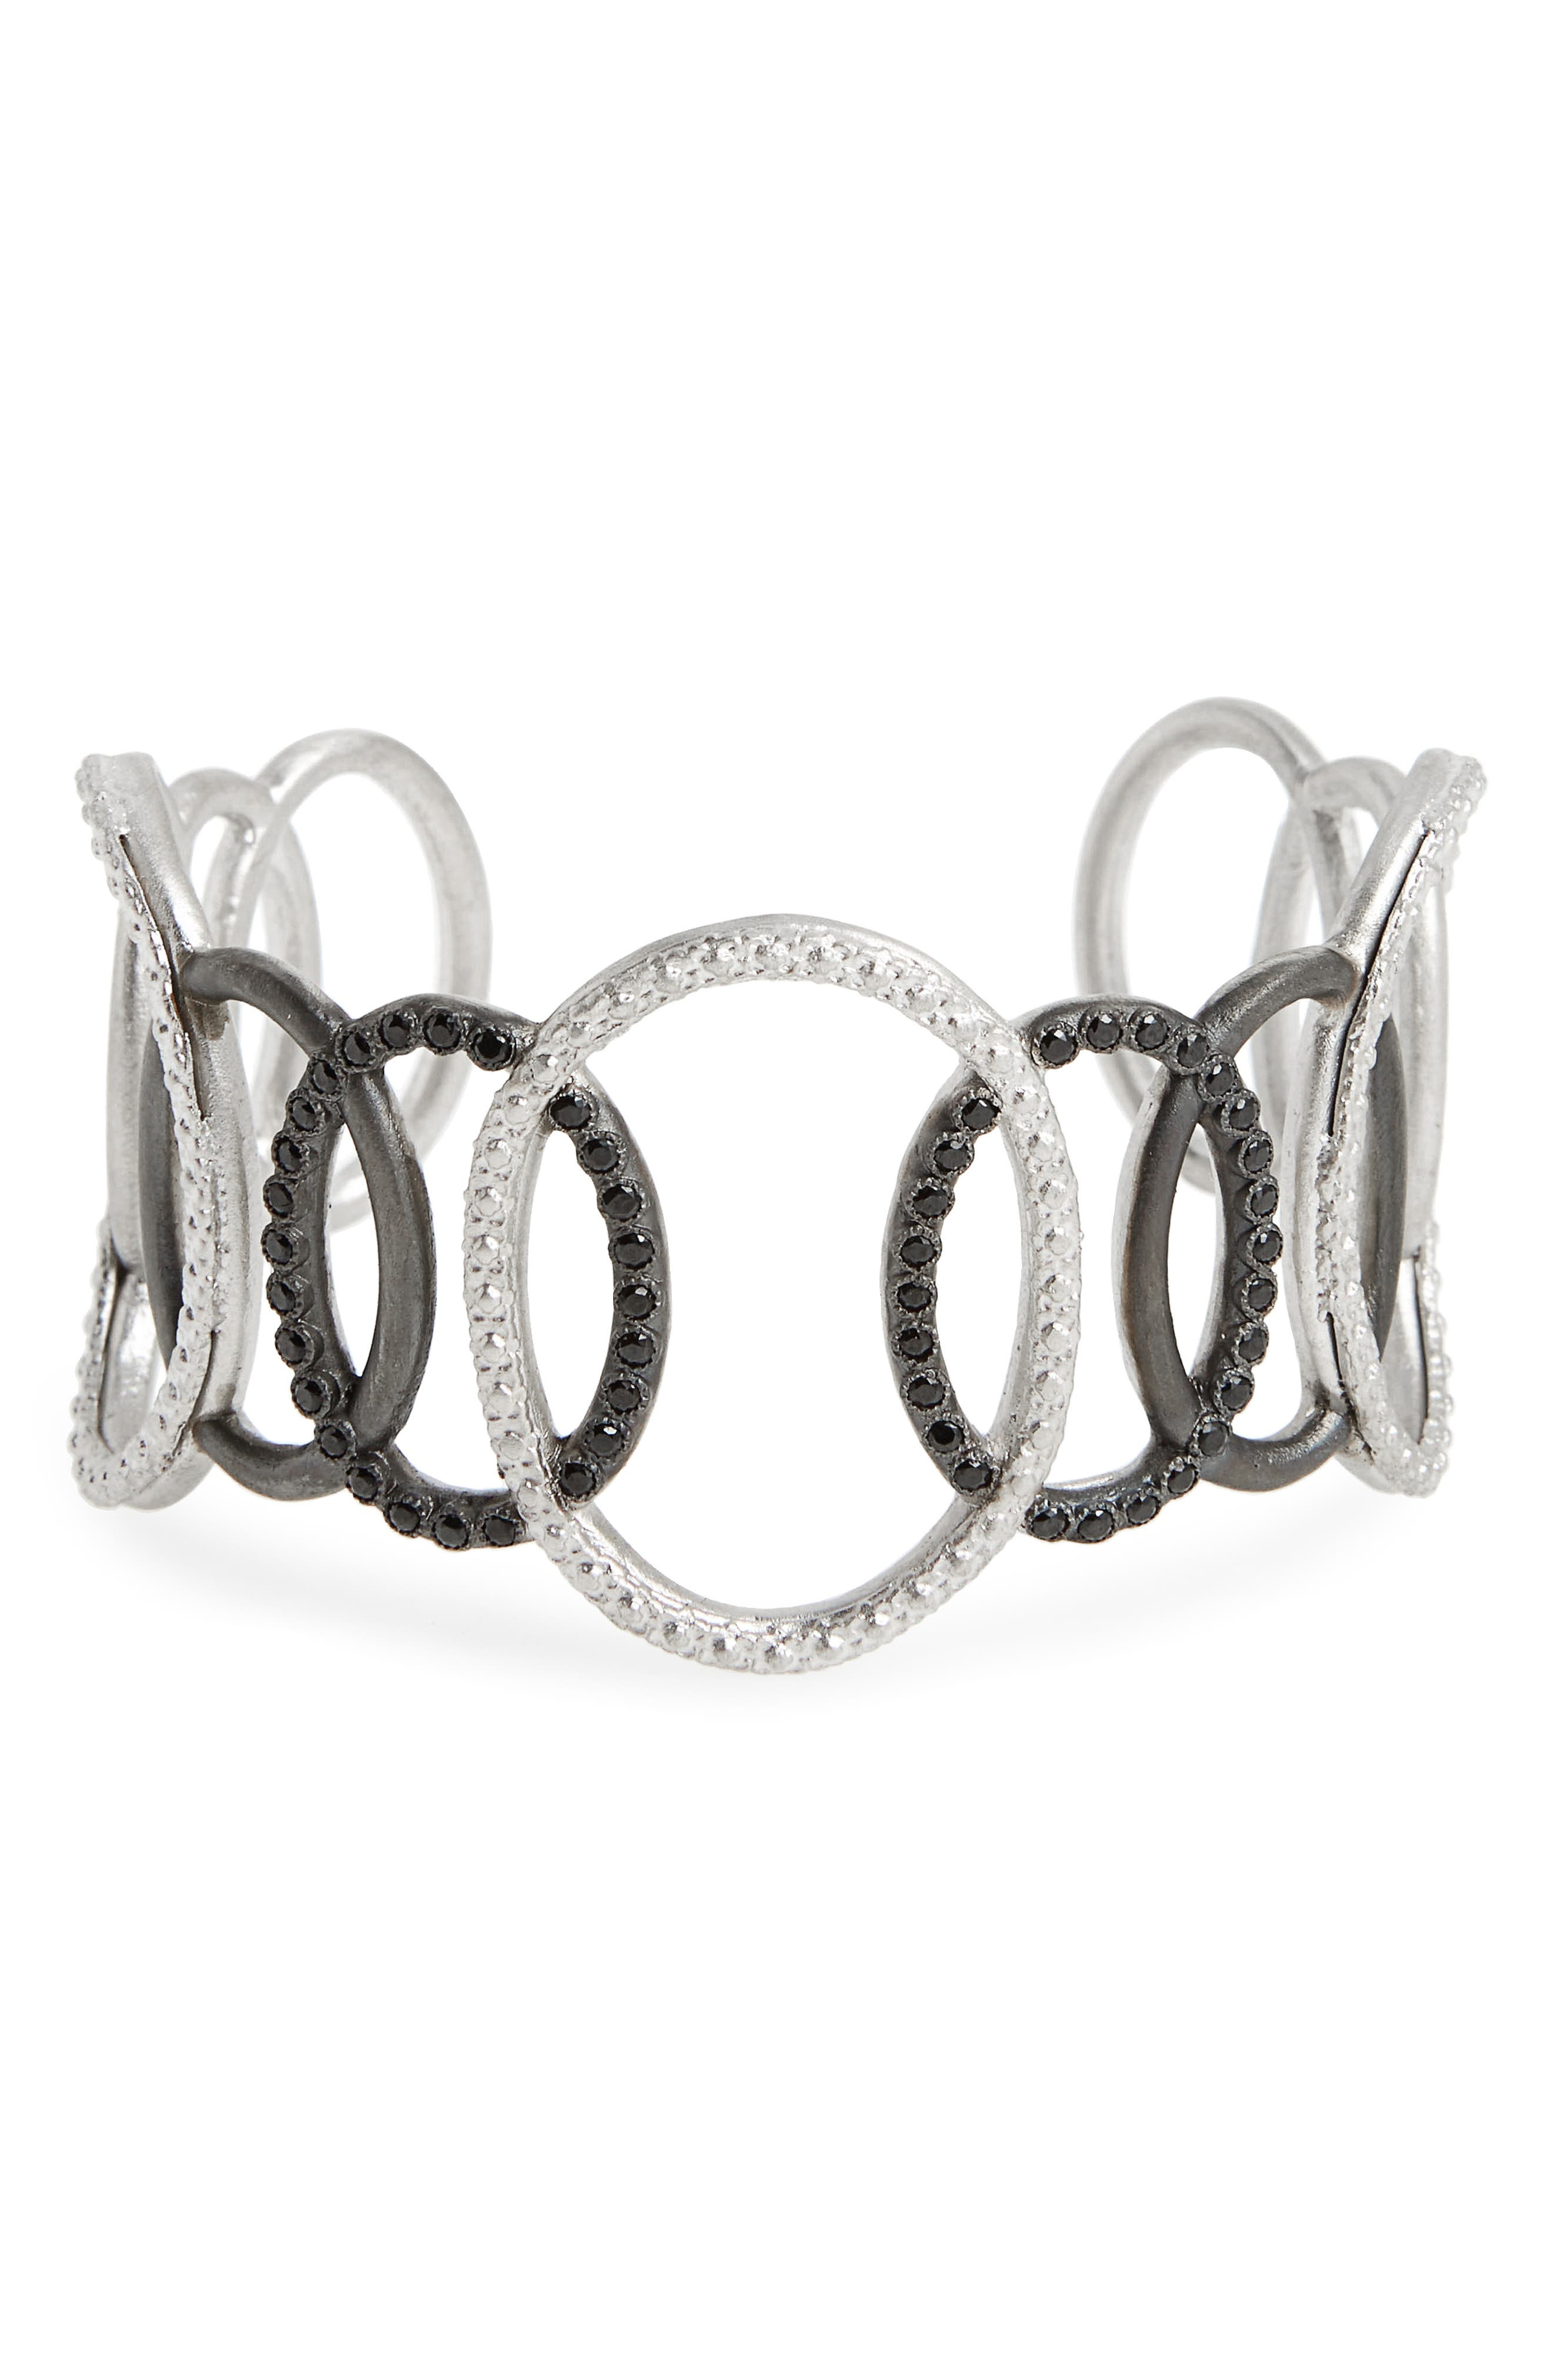 New World Large Open Circle Link Cuff,                             Main thumbnail 1, color,                             Silver